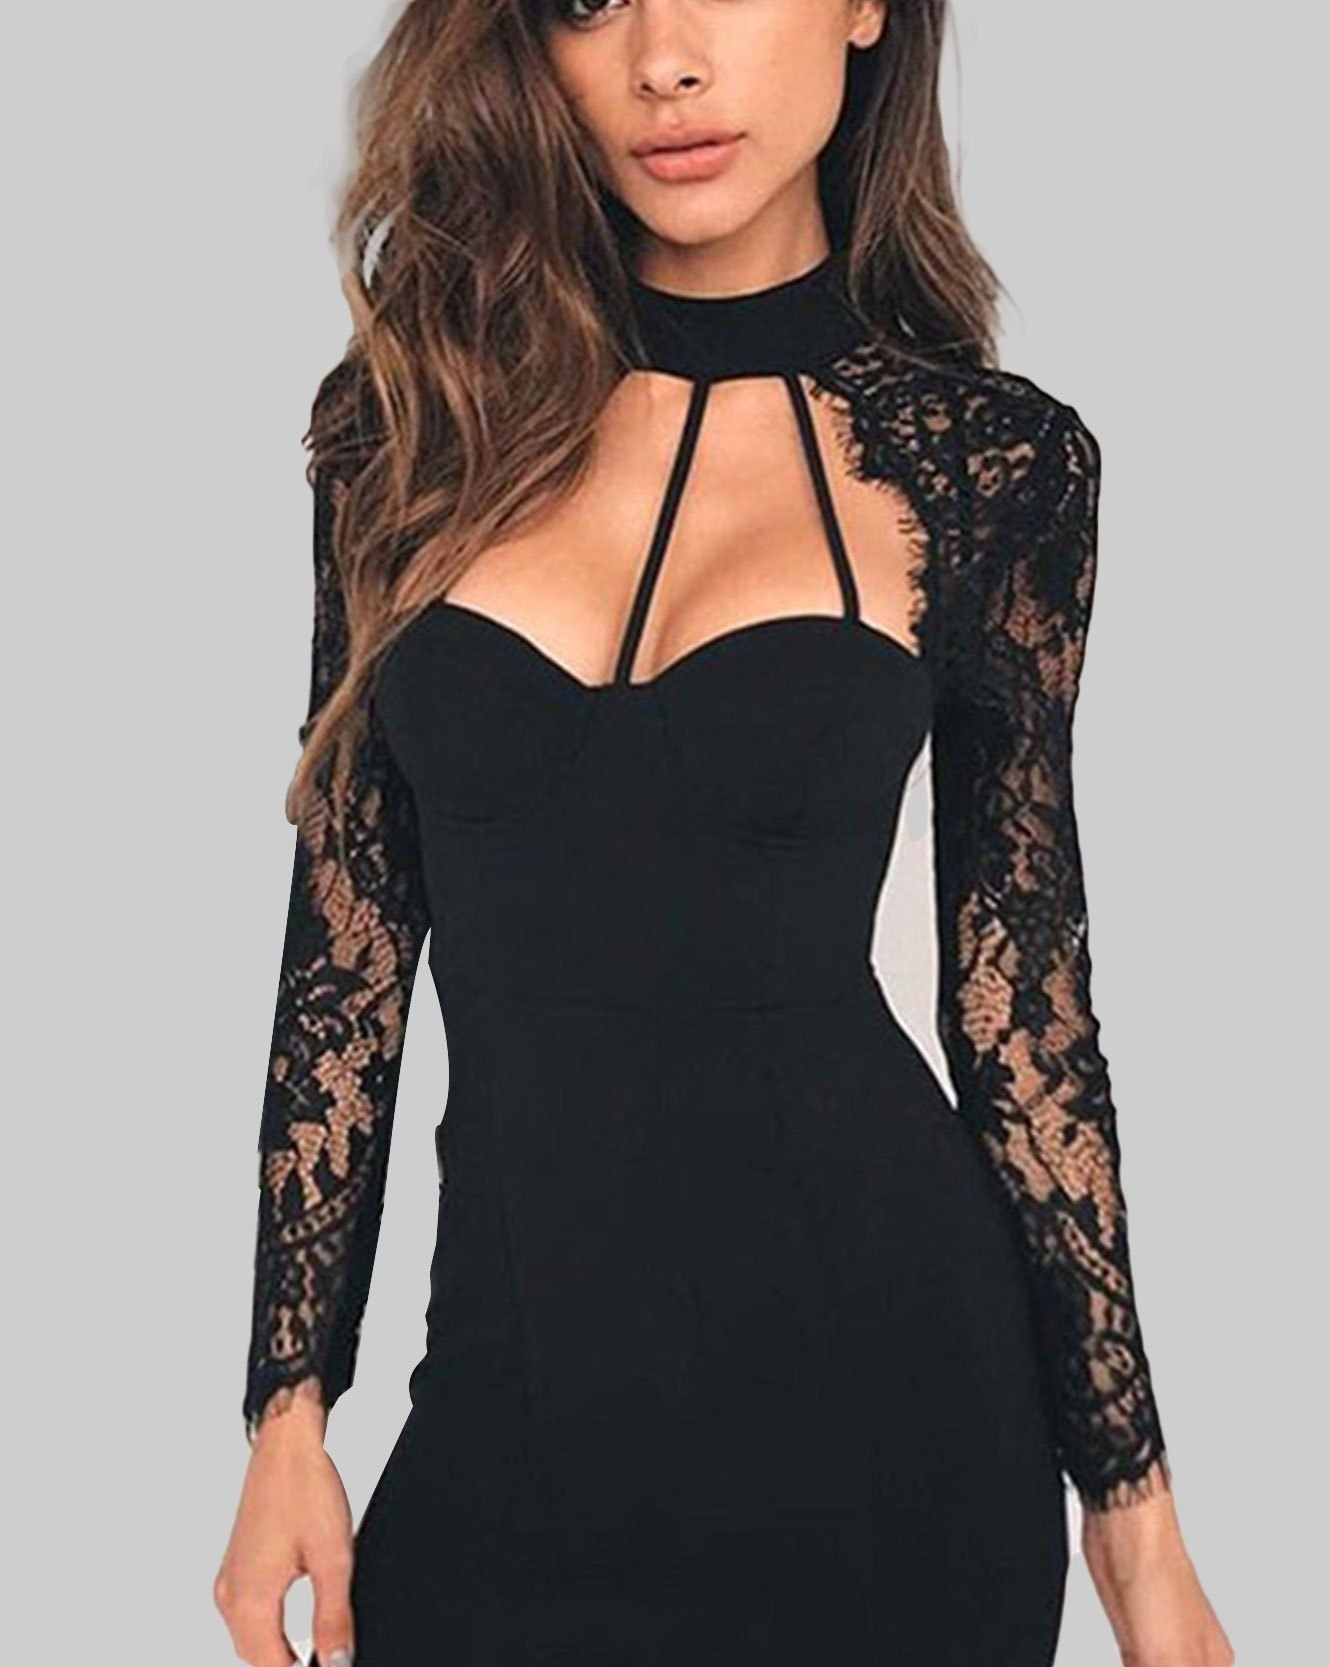 Casual Solid Slim Party Hollow Out Lace Long Sleeve Mini Dress - Black M